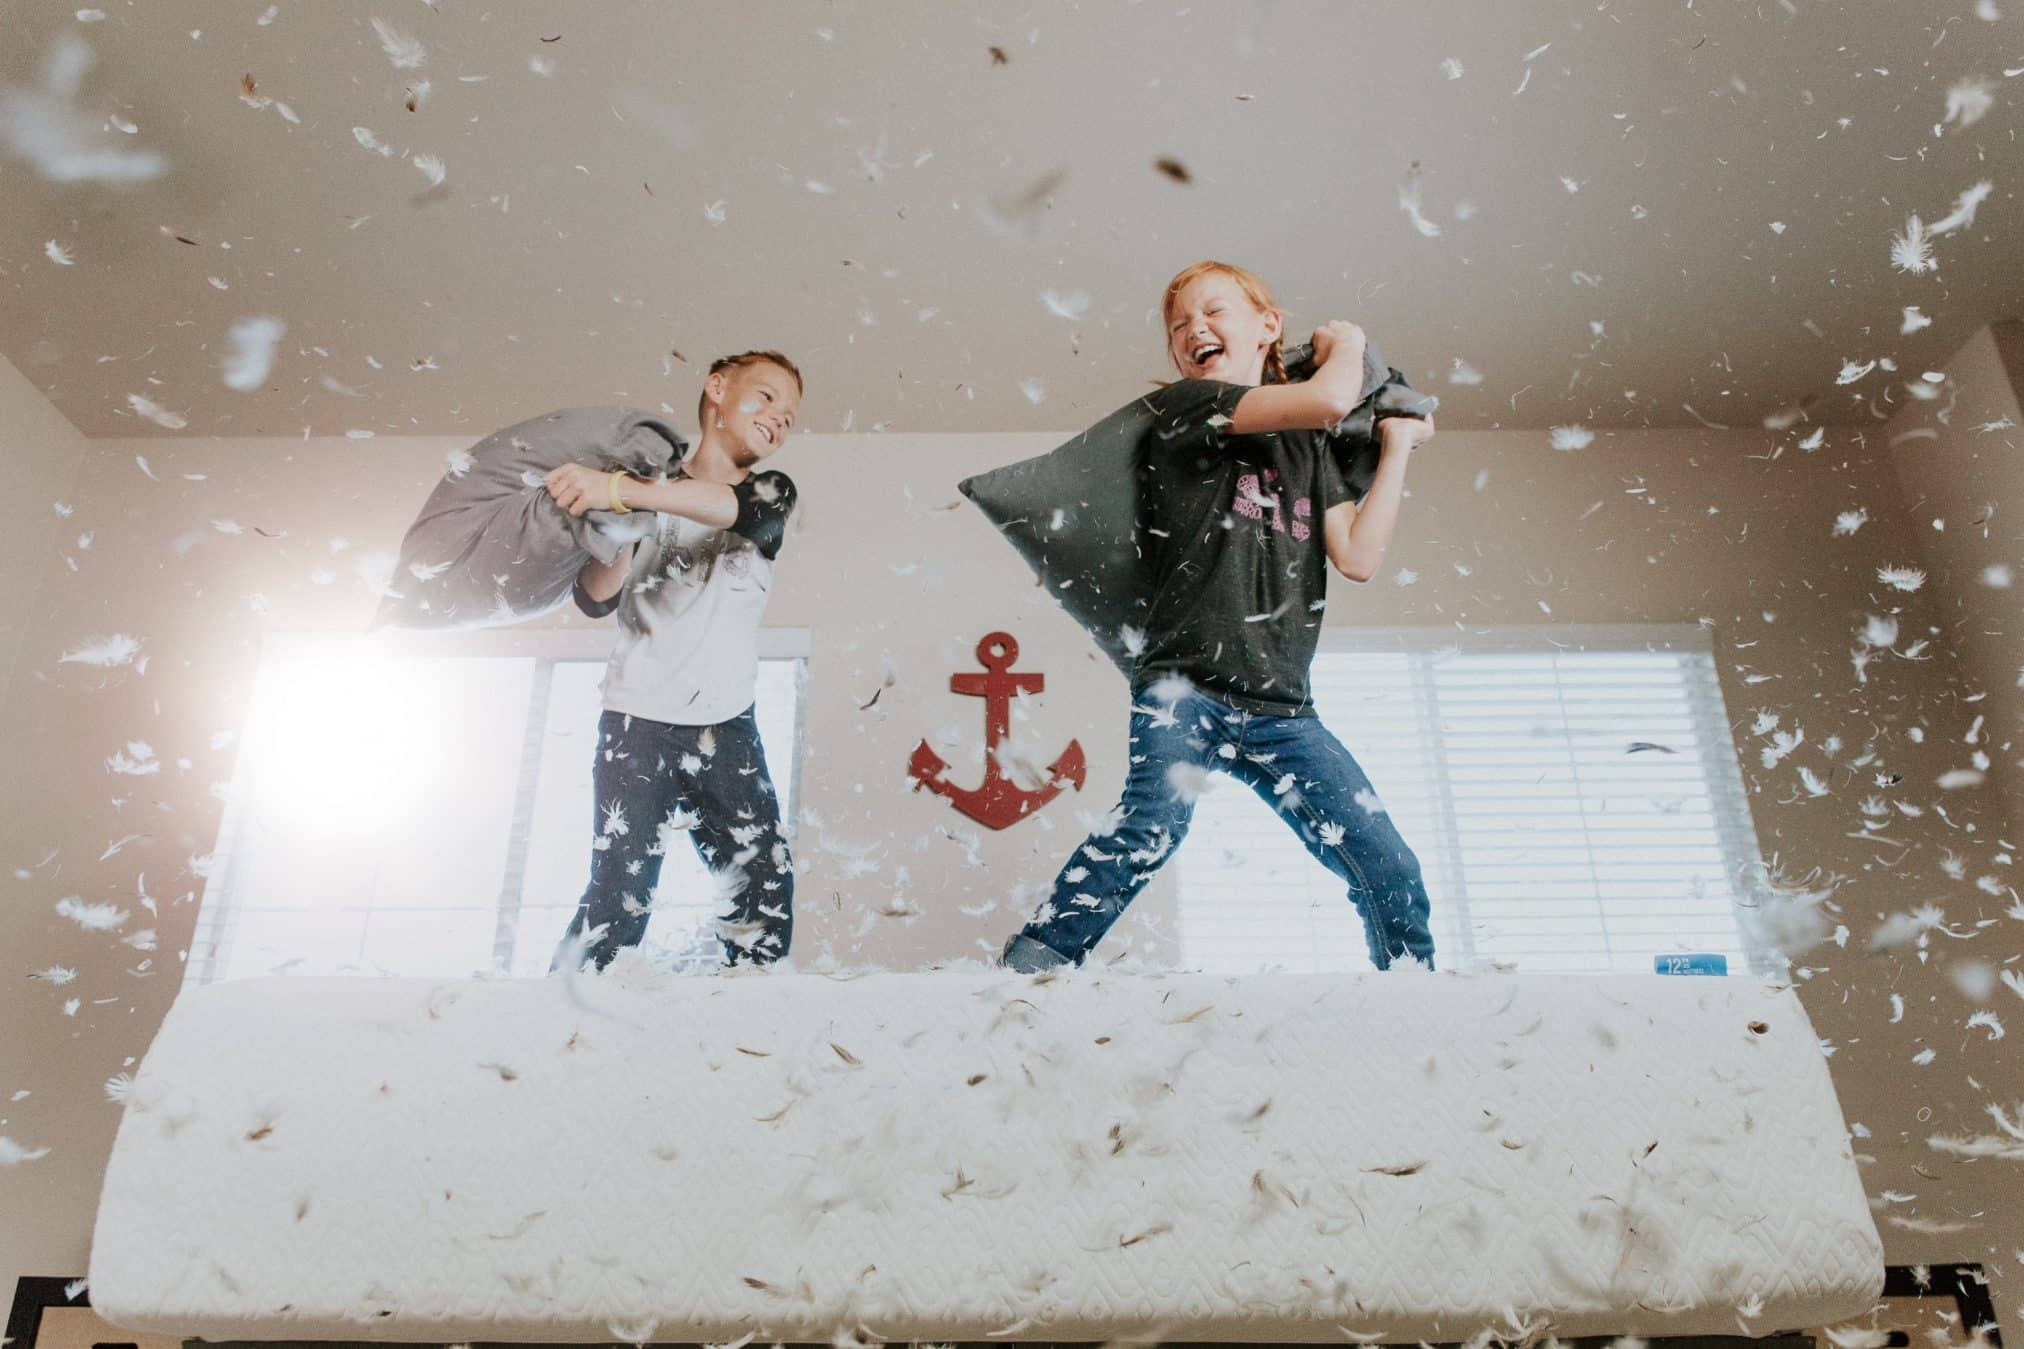 Ridiculously fun rainy day activities from your favorite bloggers: science activities, energy busters, craft ideas, and more.  #rain #handsonlearning #creativekids #learning #kidminds #energybuster #rainyday #littlekids #letkidsplay